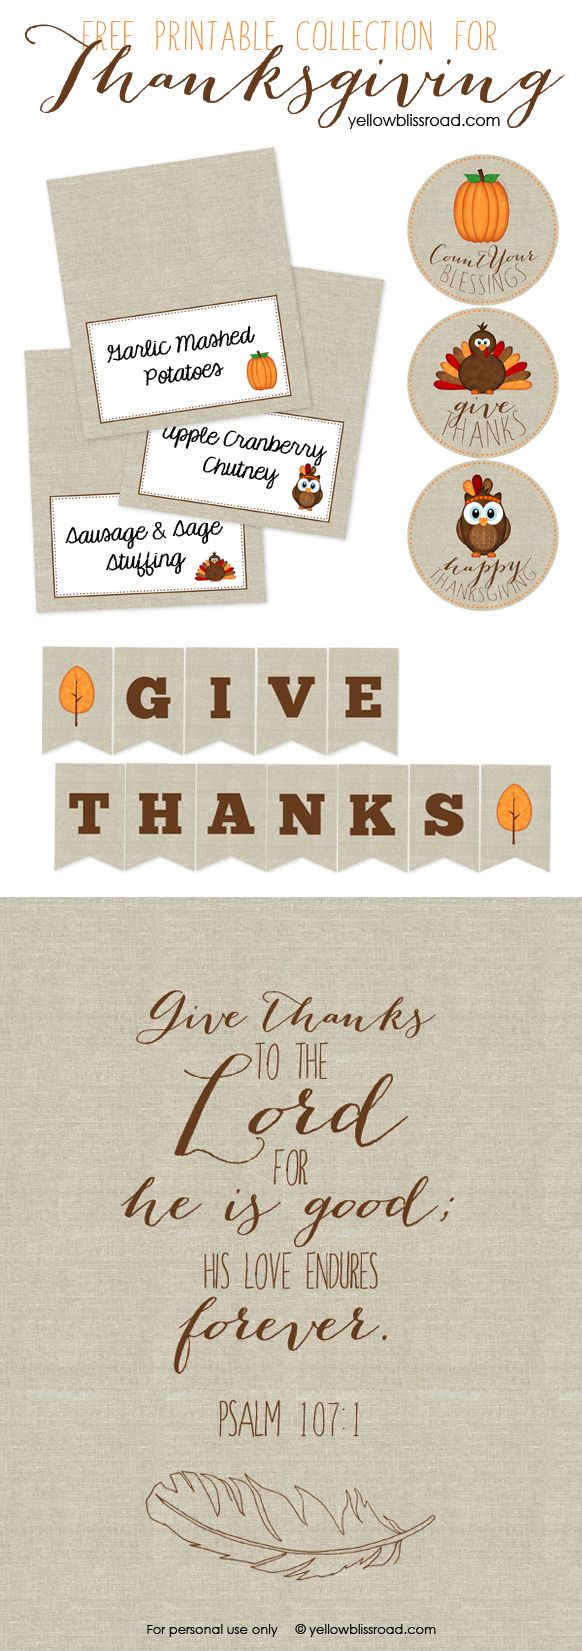 Free Printables for Thanksgiving